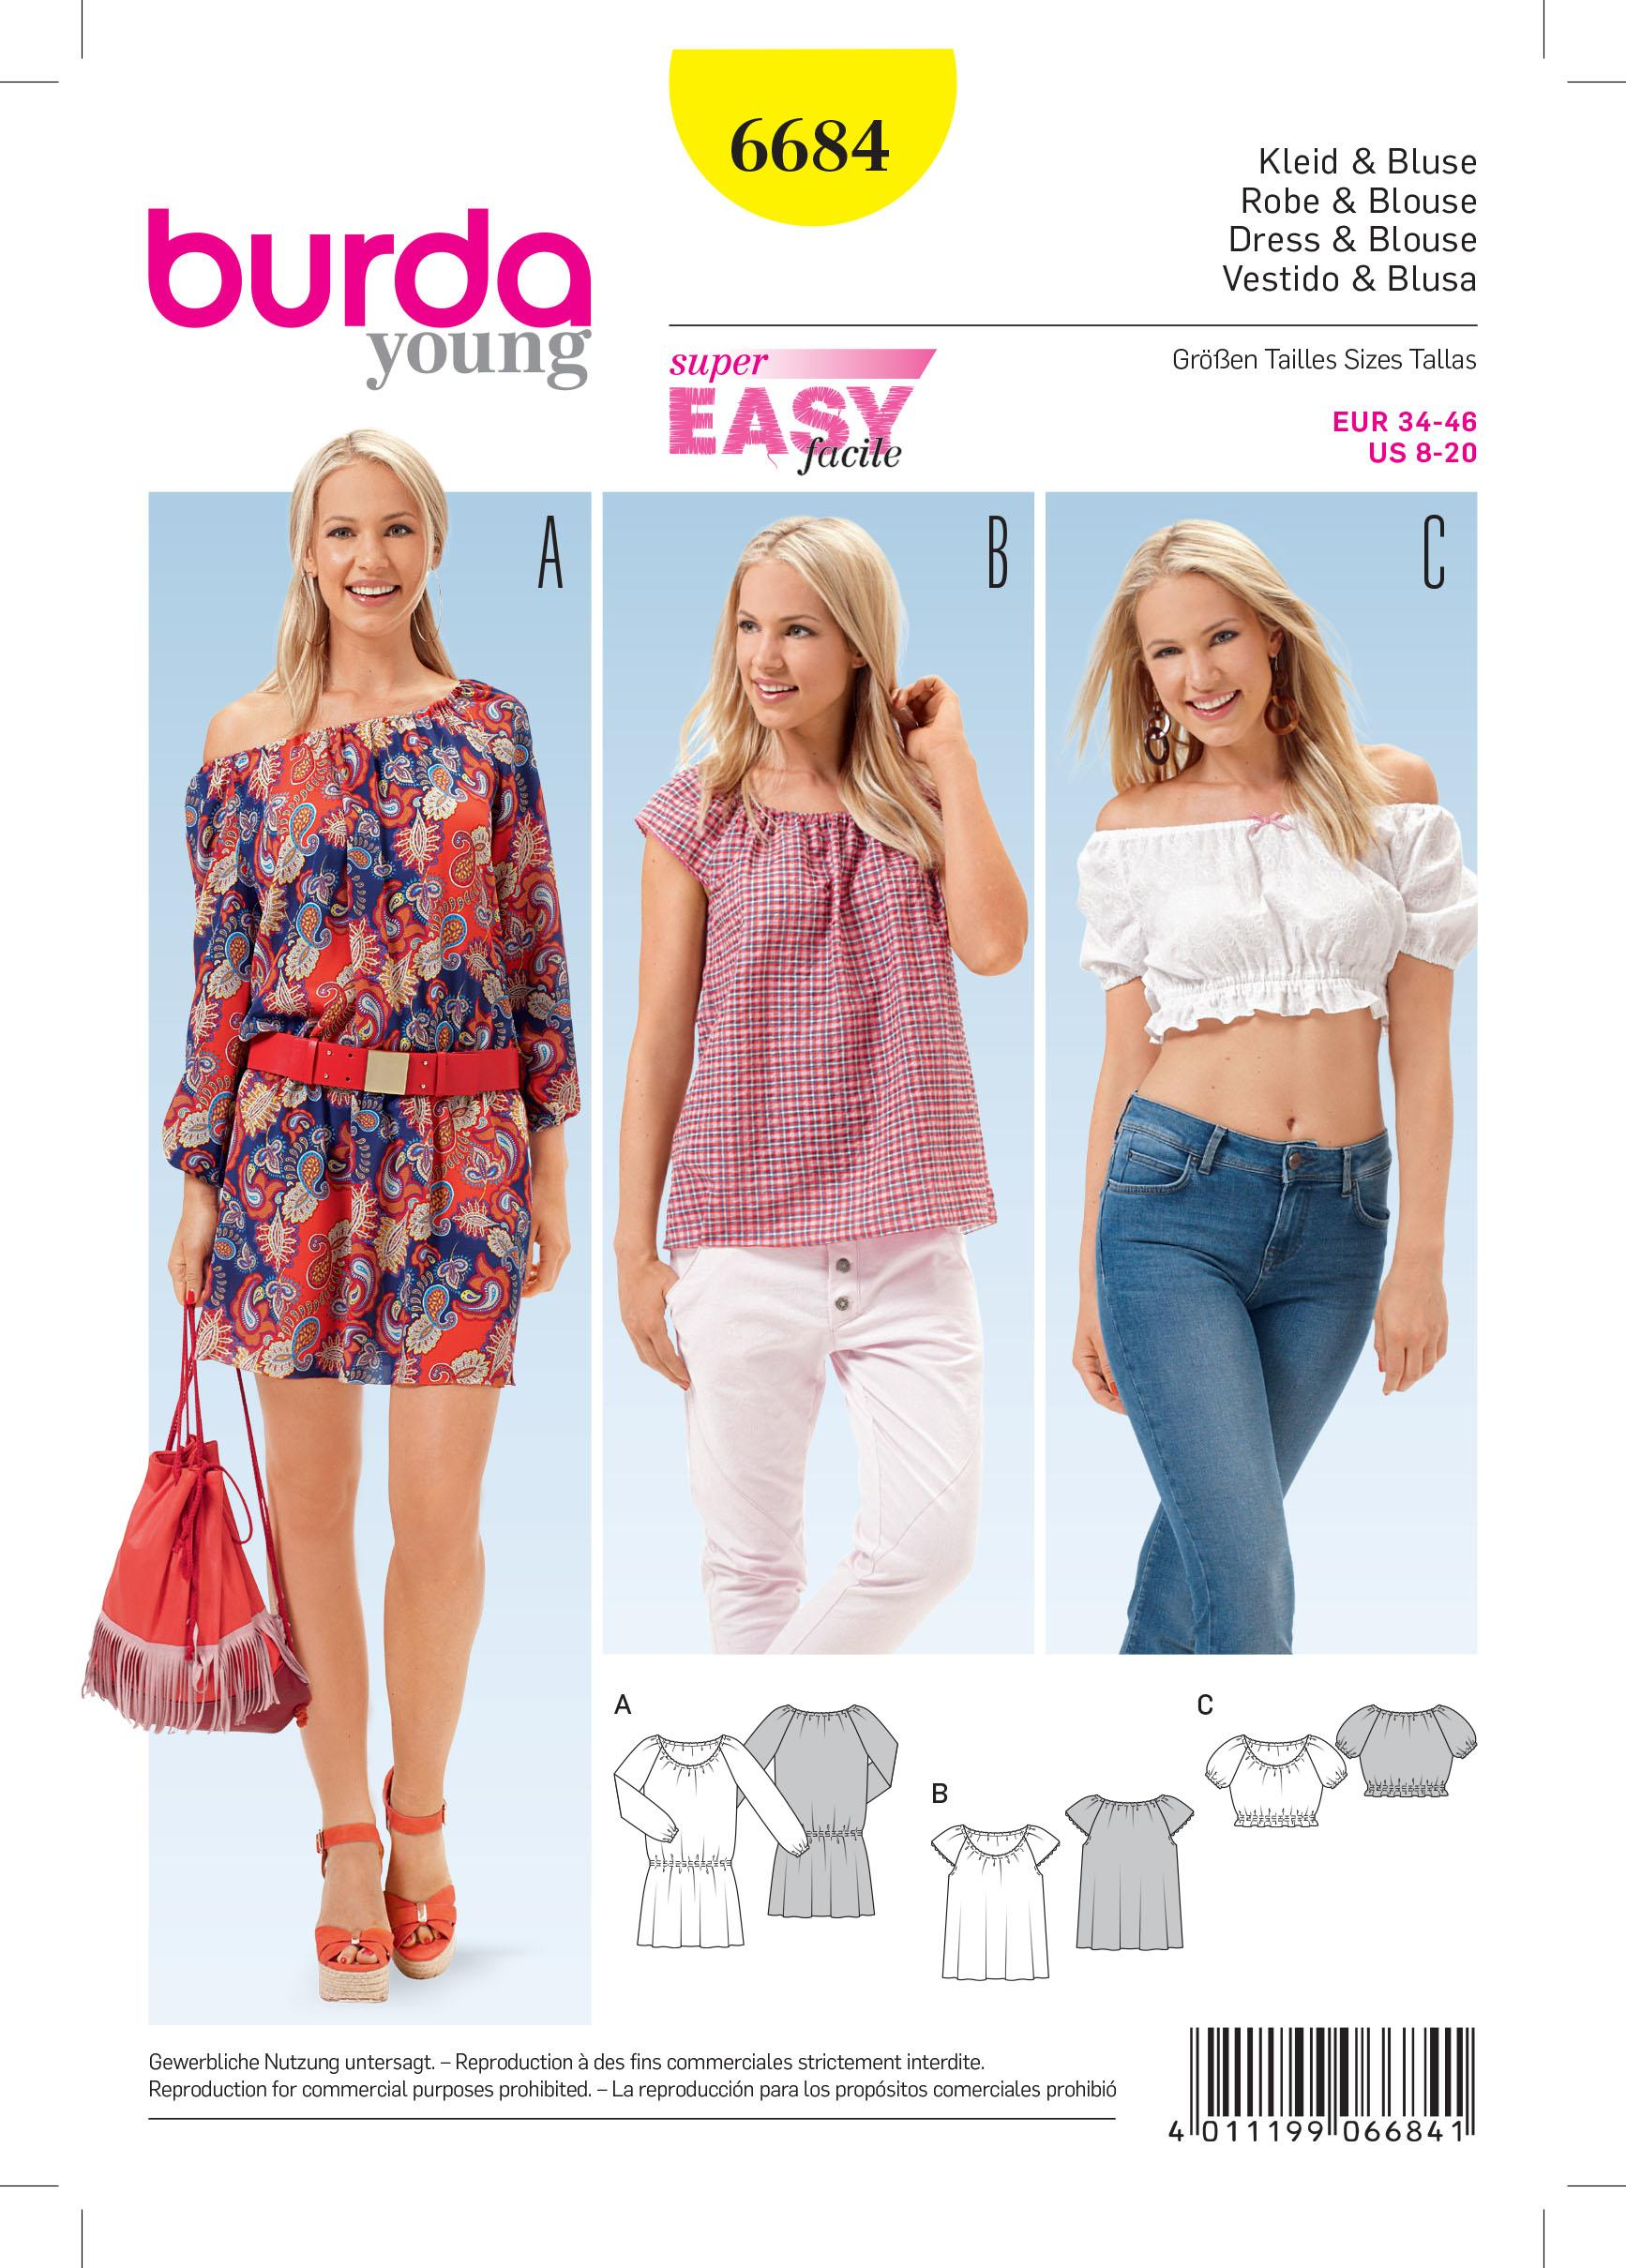 Burda B6684 Women's Dress & Blouse Sewing Pattern